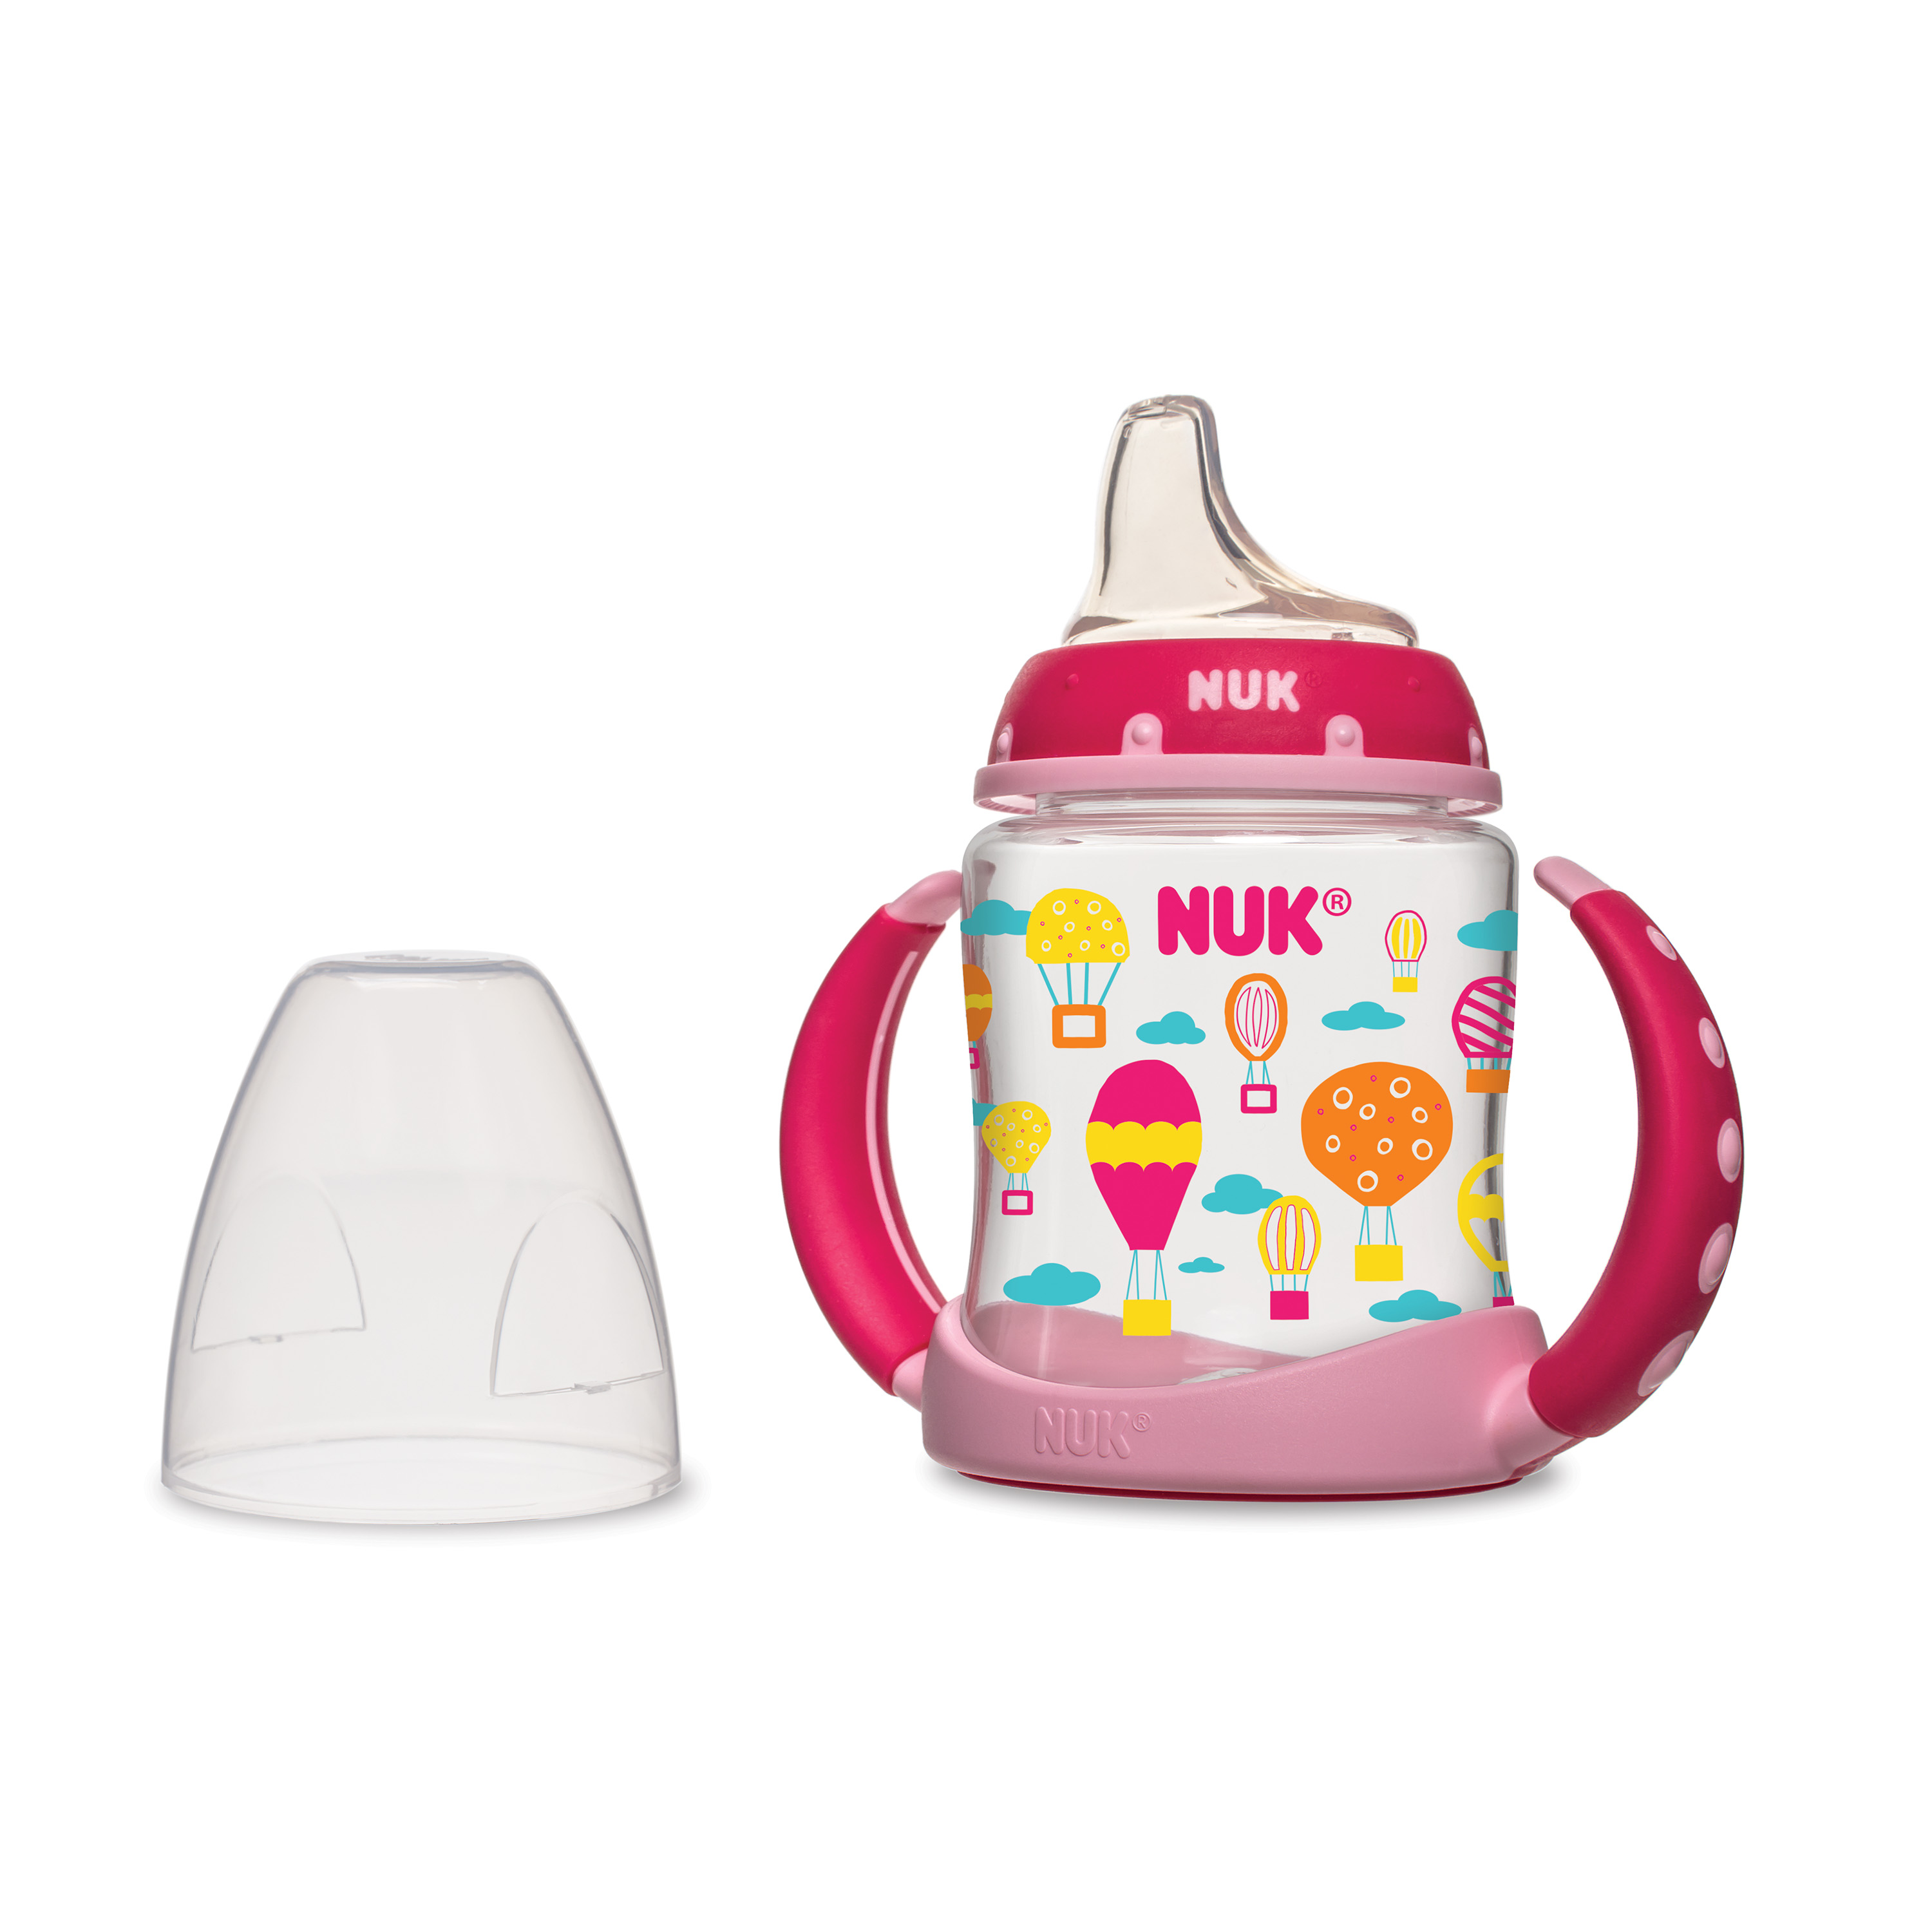 Nuk Learner Cups 6m+ - 2 CT